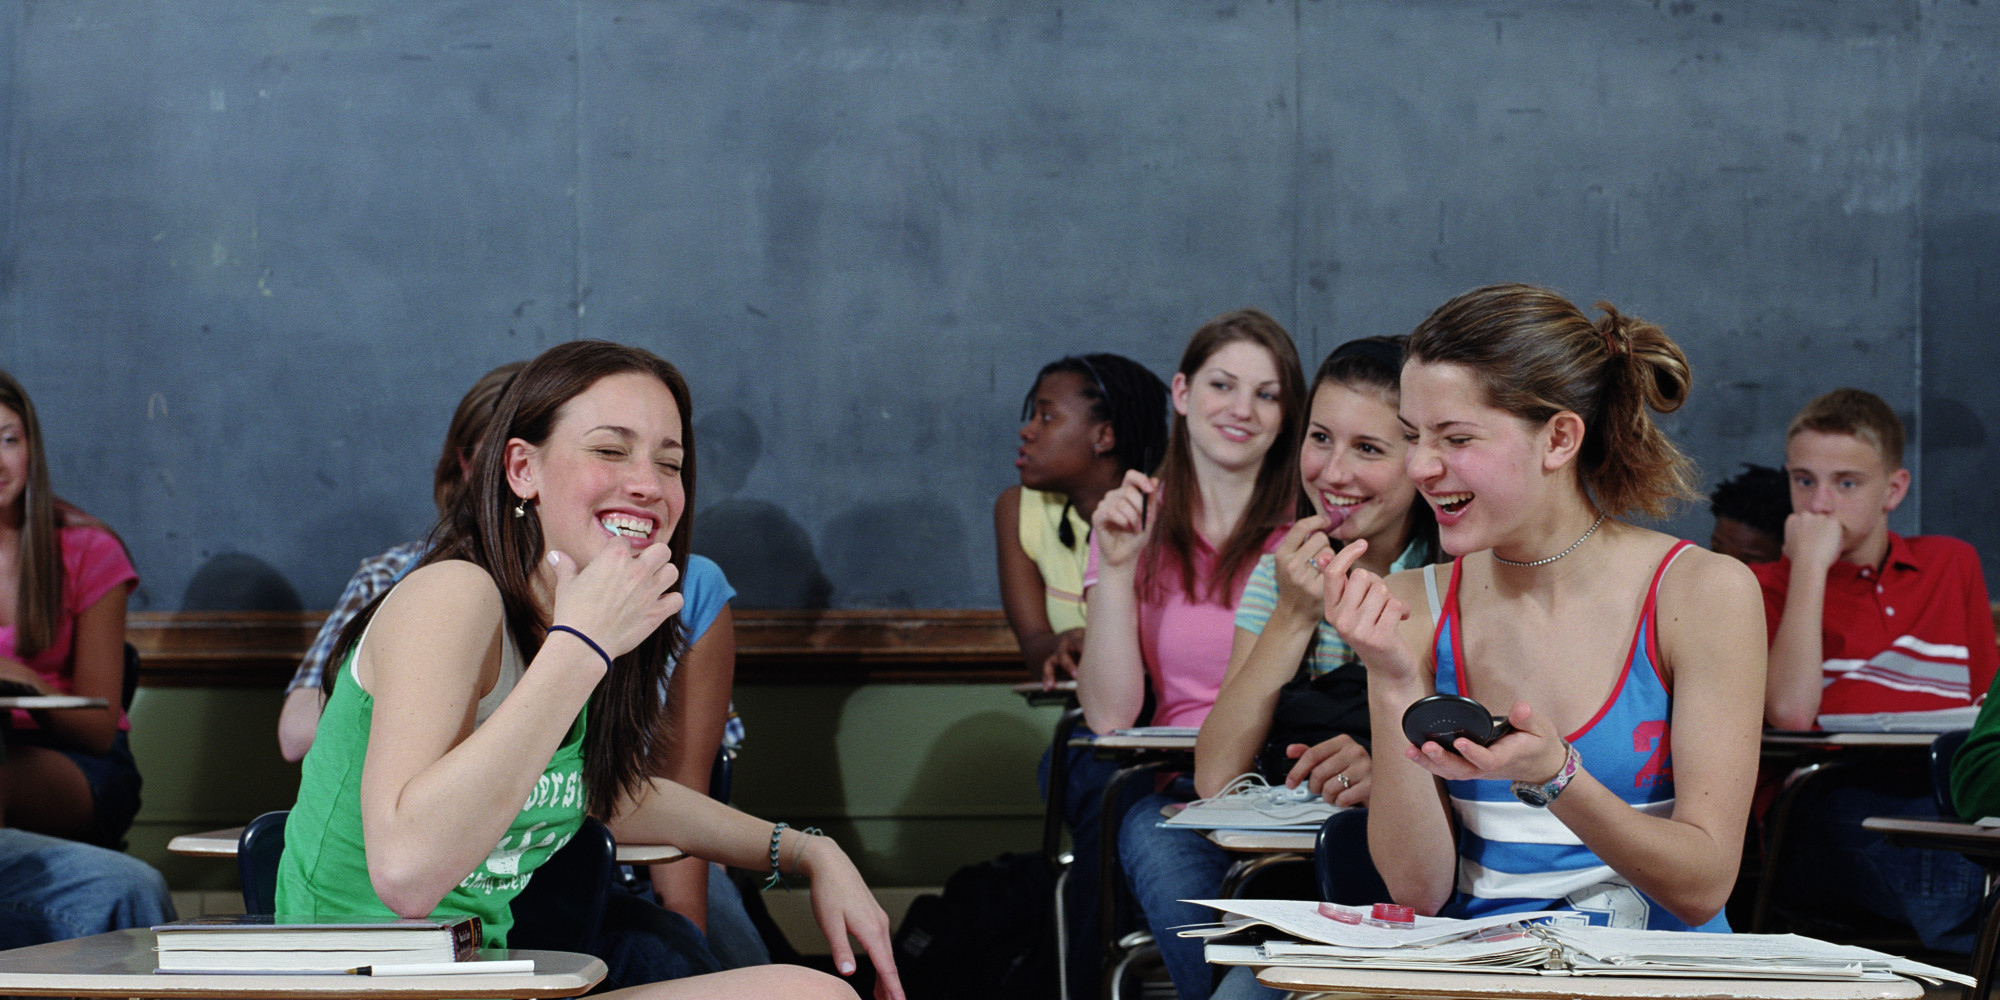 The Best Predictor Of Who Your Teen Will Be Friends With